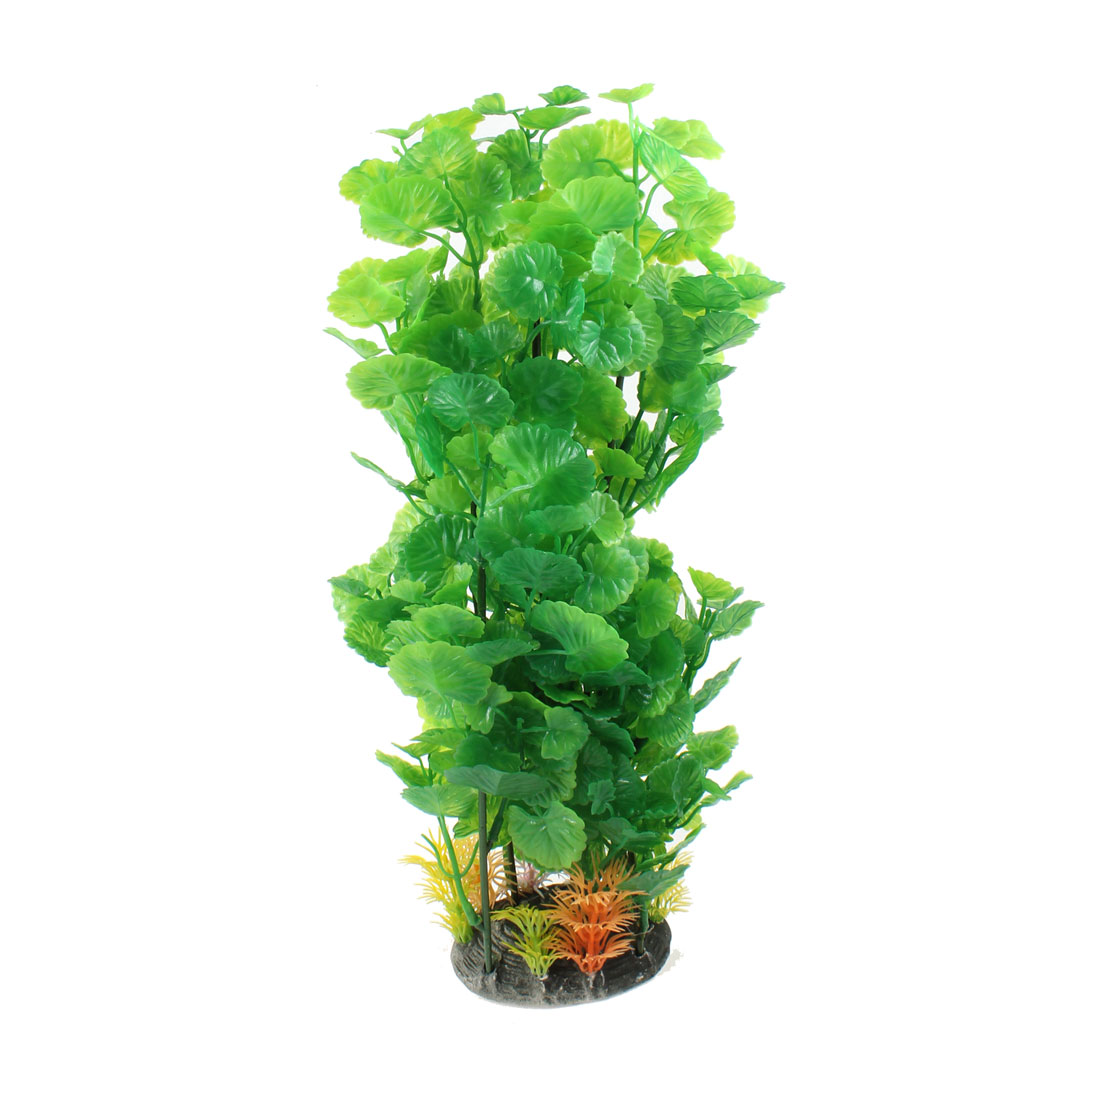 "13.3"" Height Apple Shape Leaves Decor Manmade Underwater Grasses for Fish Tank"